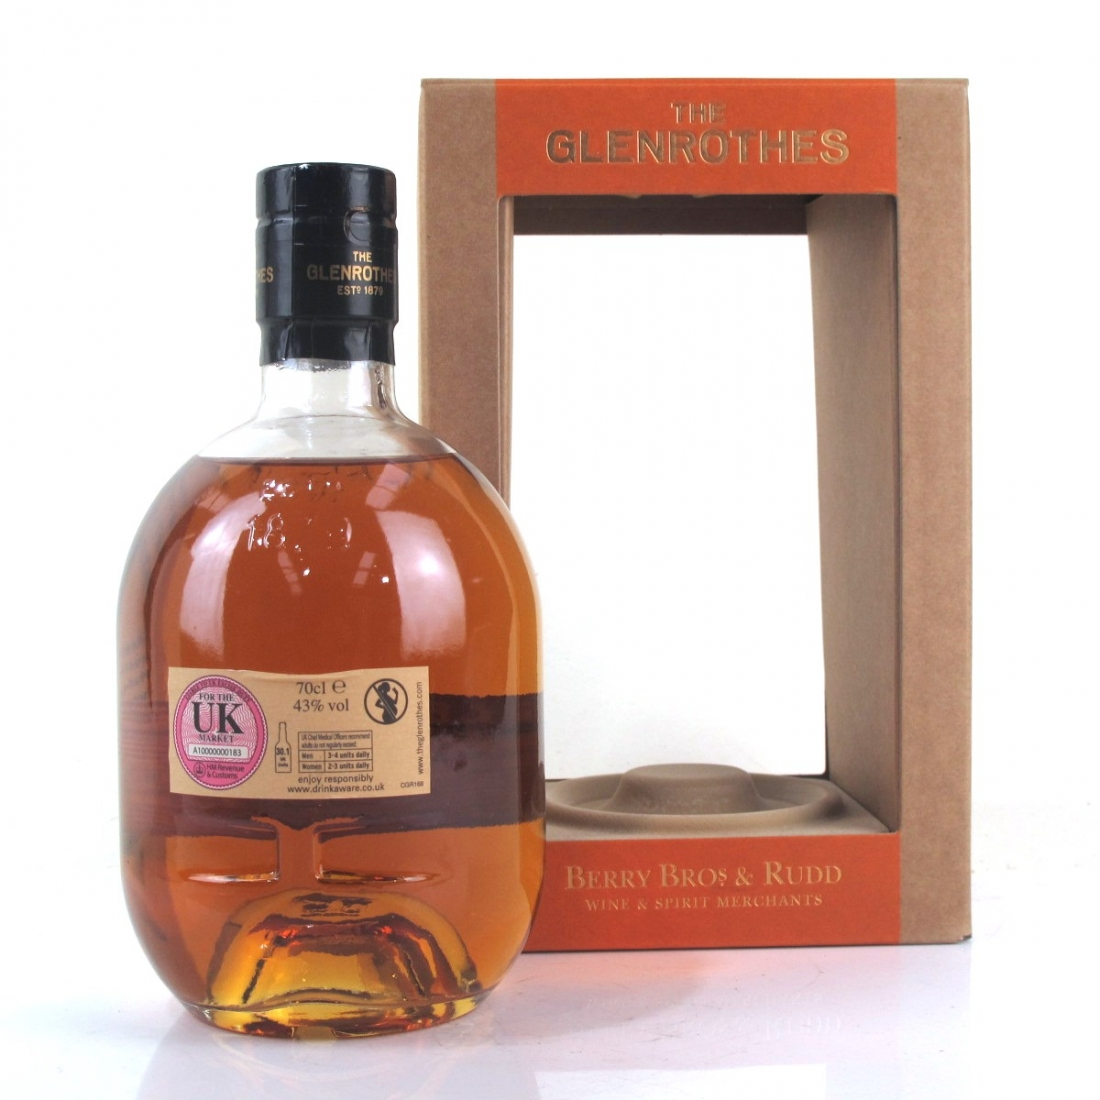 Glenrothes 1998 Vintage / Berry Brothers & Rudd